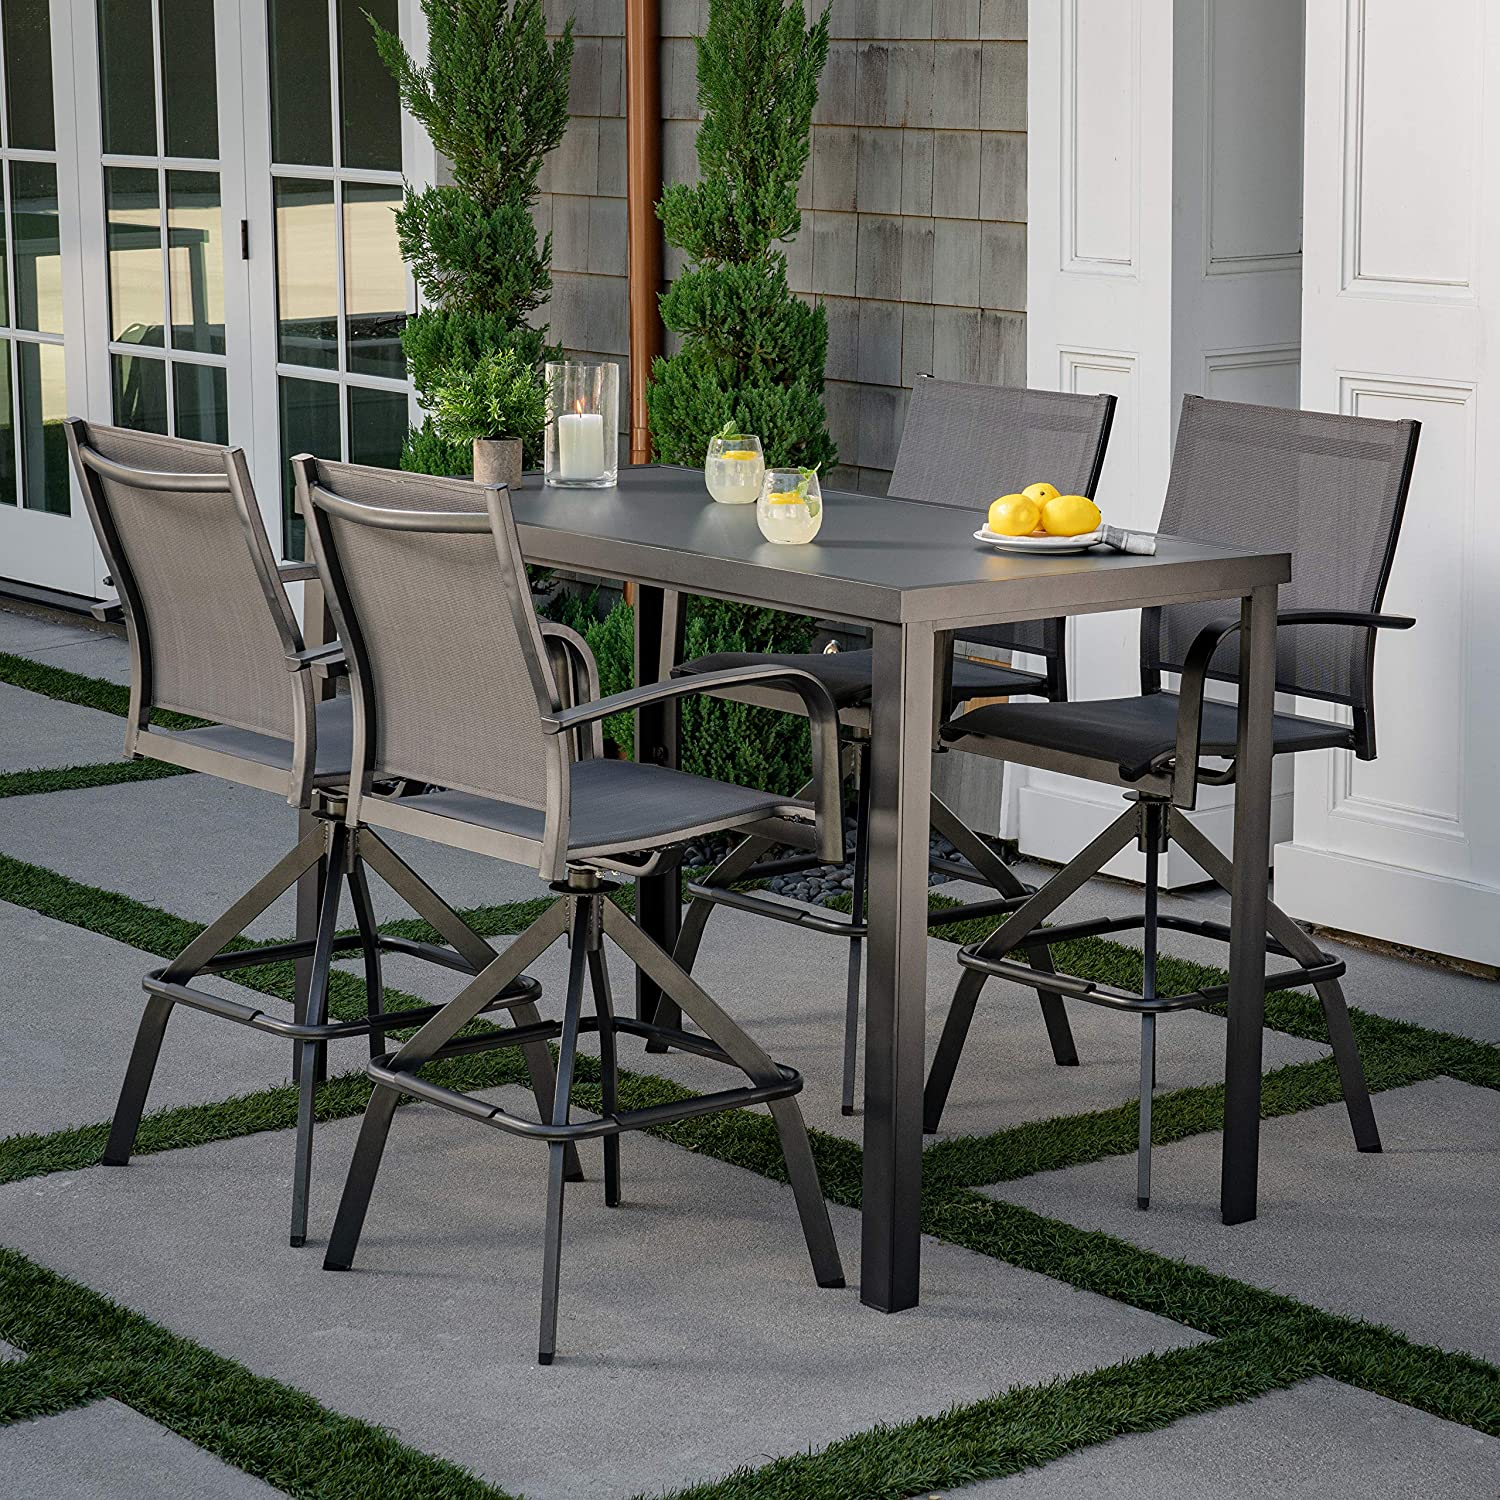 Hanover Naples 5-Piece High-Dining Set with 4 Swivel Chairs and a Glass-Top Bar Table, Gray, NAPDN5PCBR-GRY Outdoor Furniture